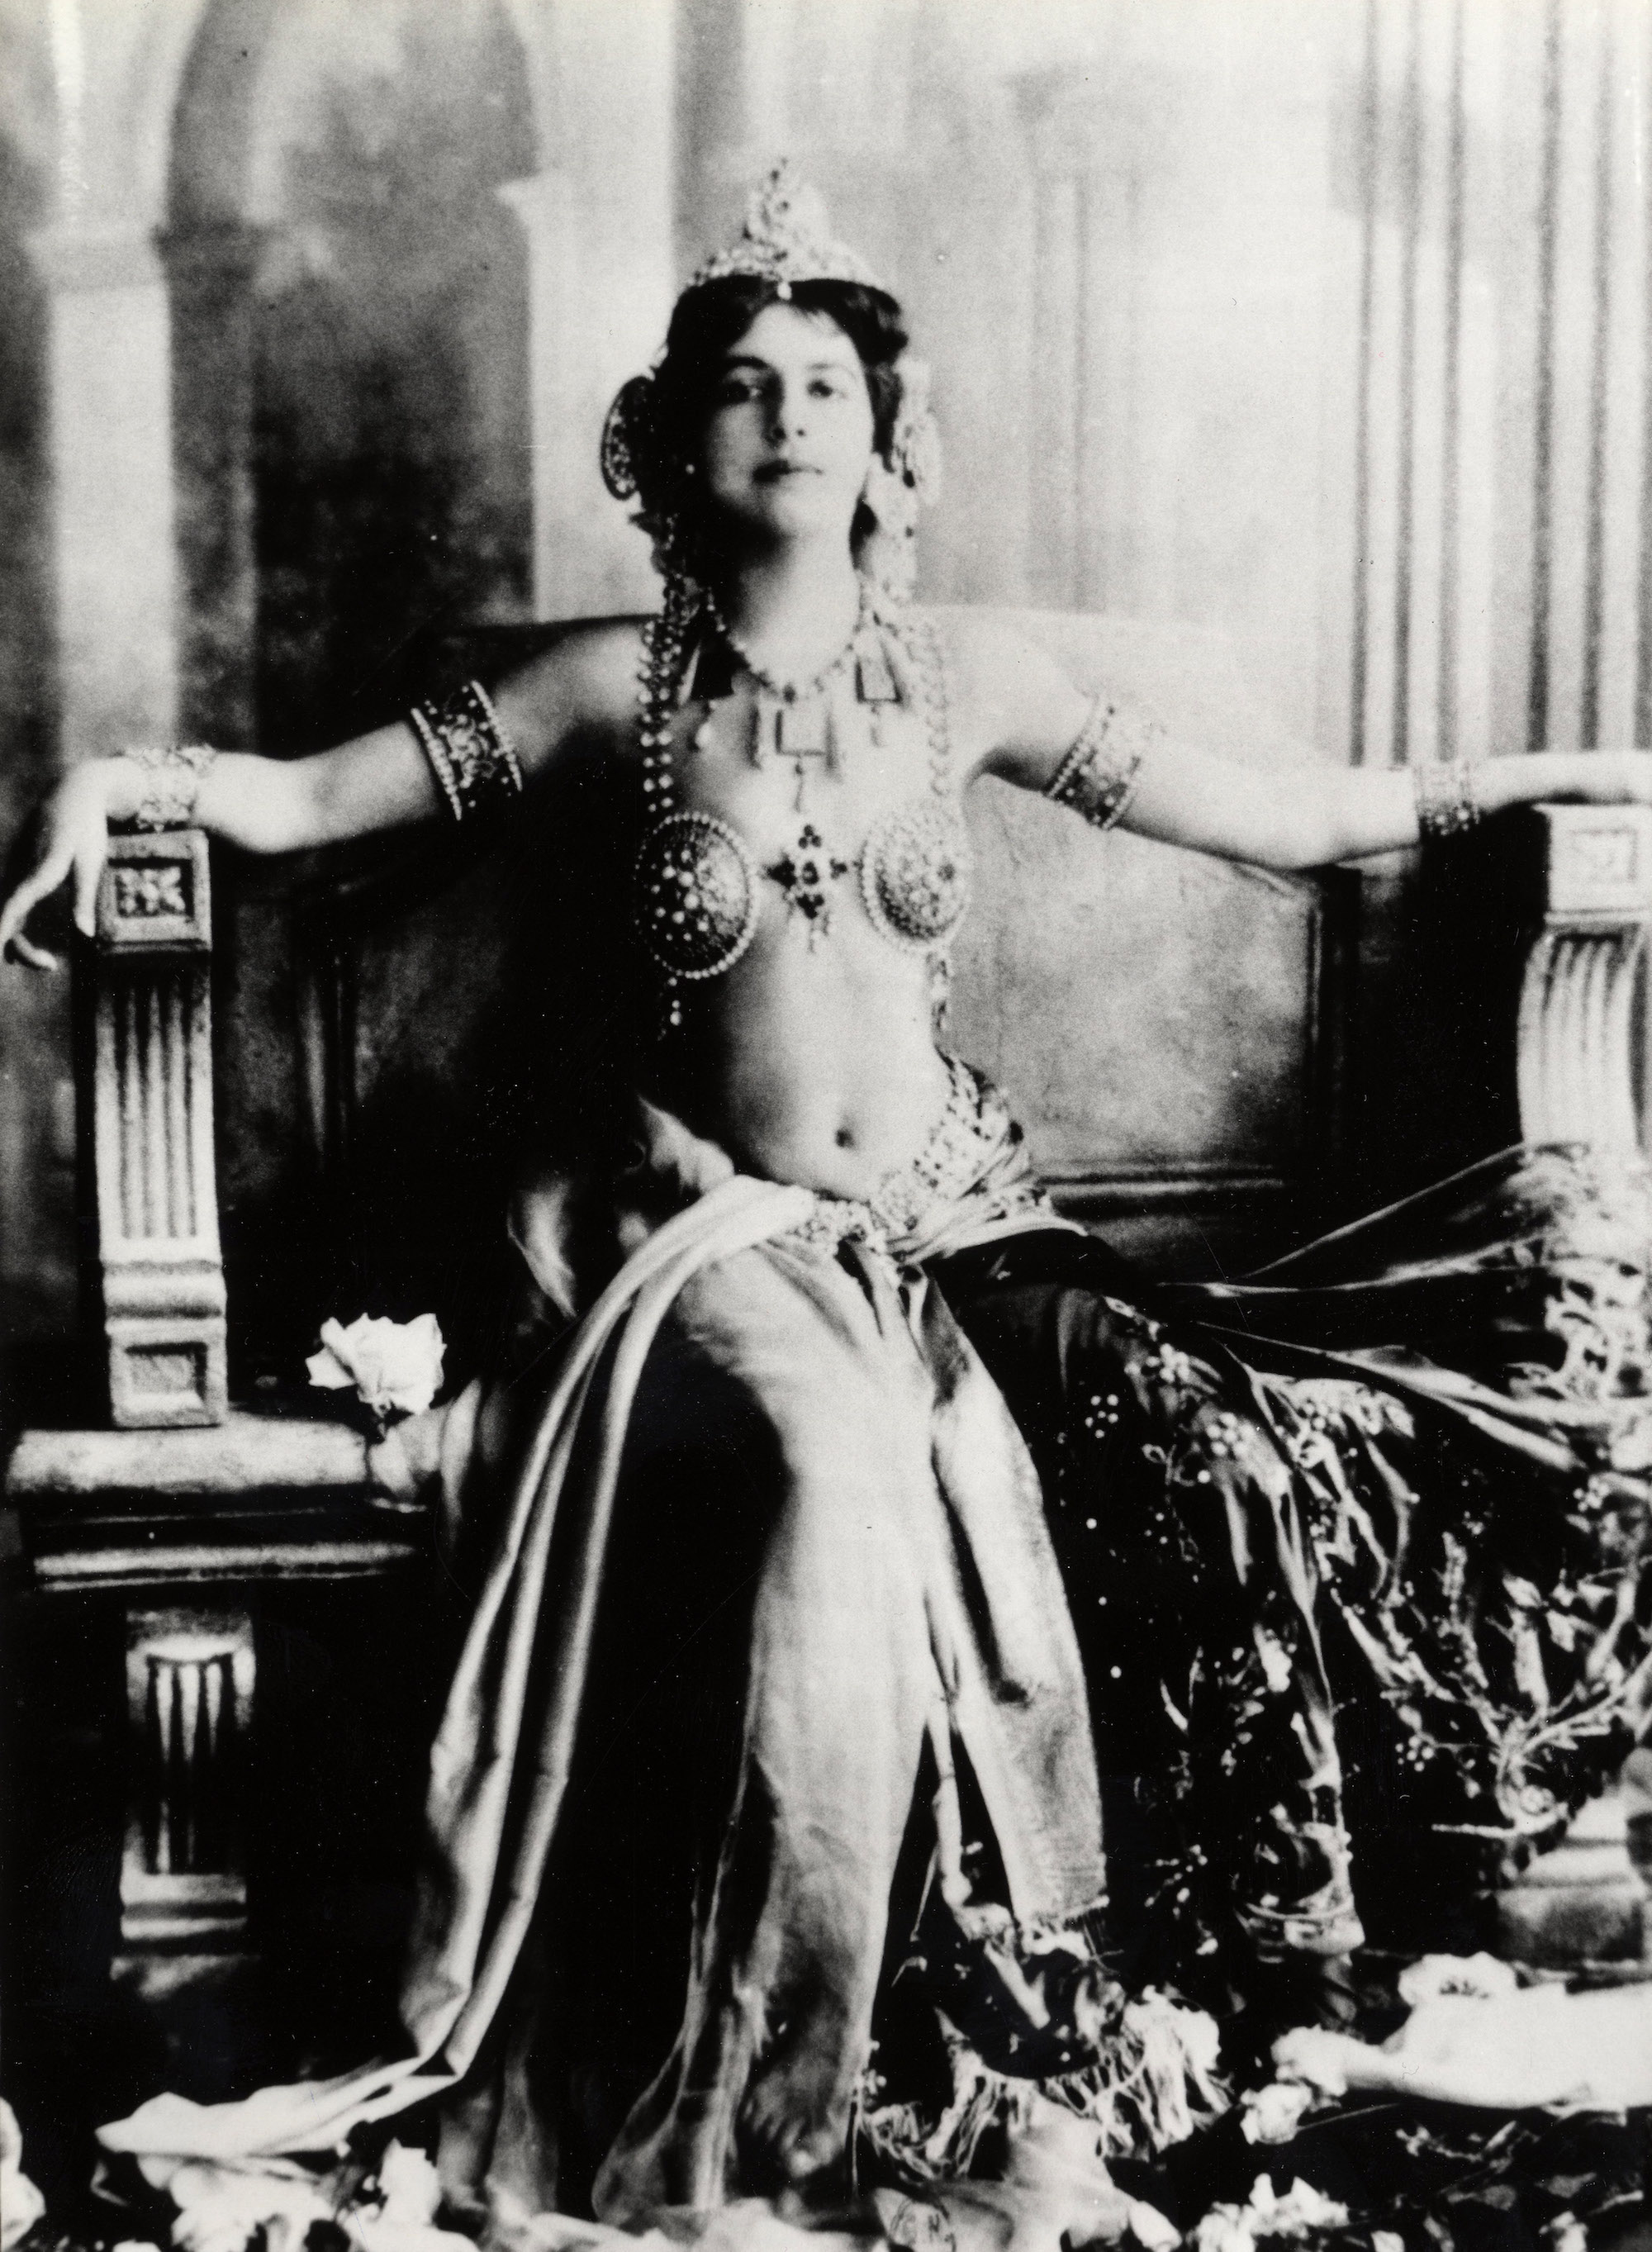 Mata Hari In Photos: The Ultimate Femme Fatale and Woman ...: http://flashbak.com/mata-hari-in-photos-the-ultimate-femme-fatale-and-woman-of-courage-366235/